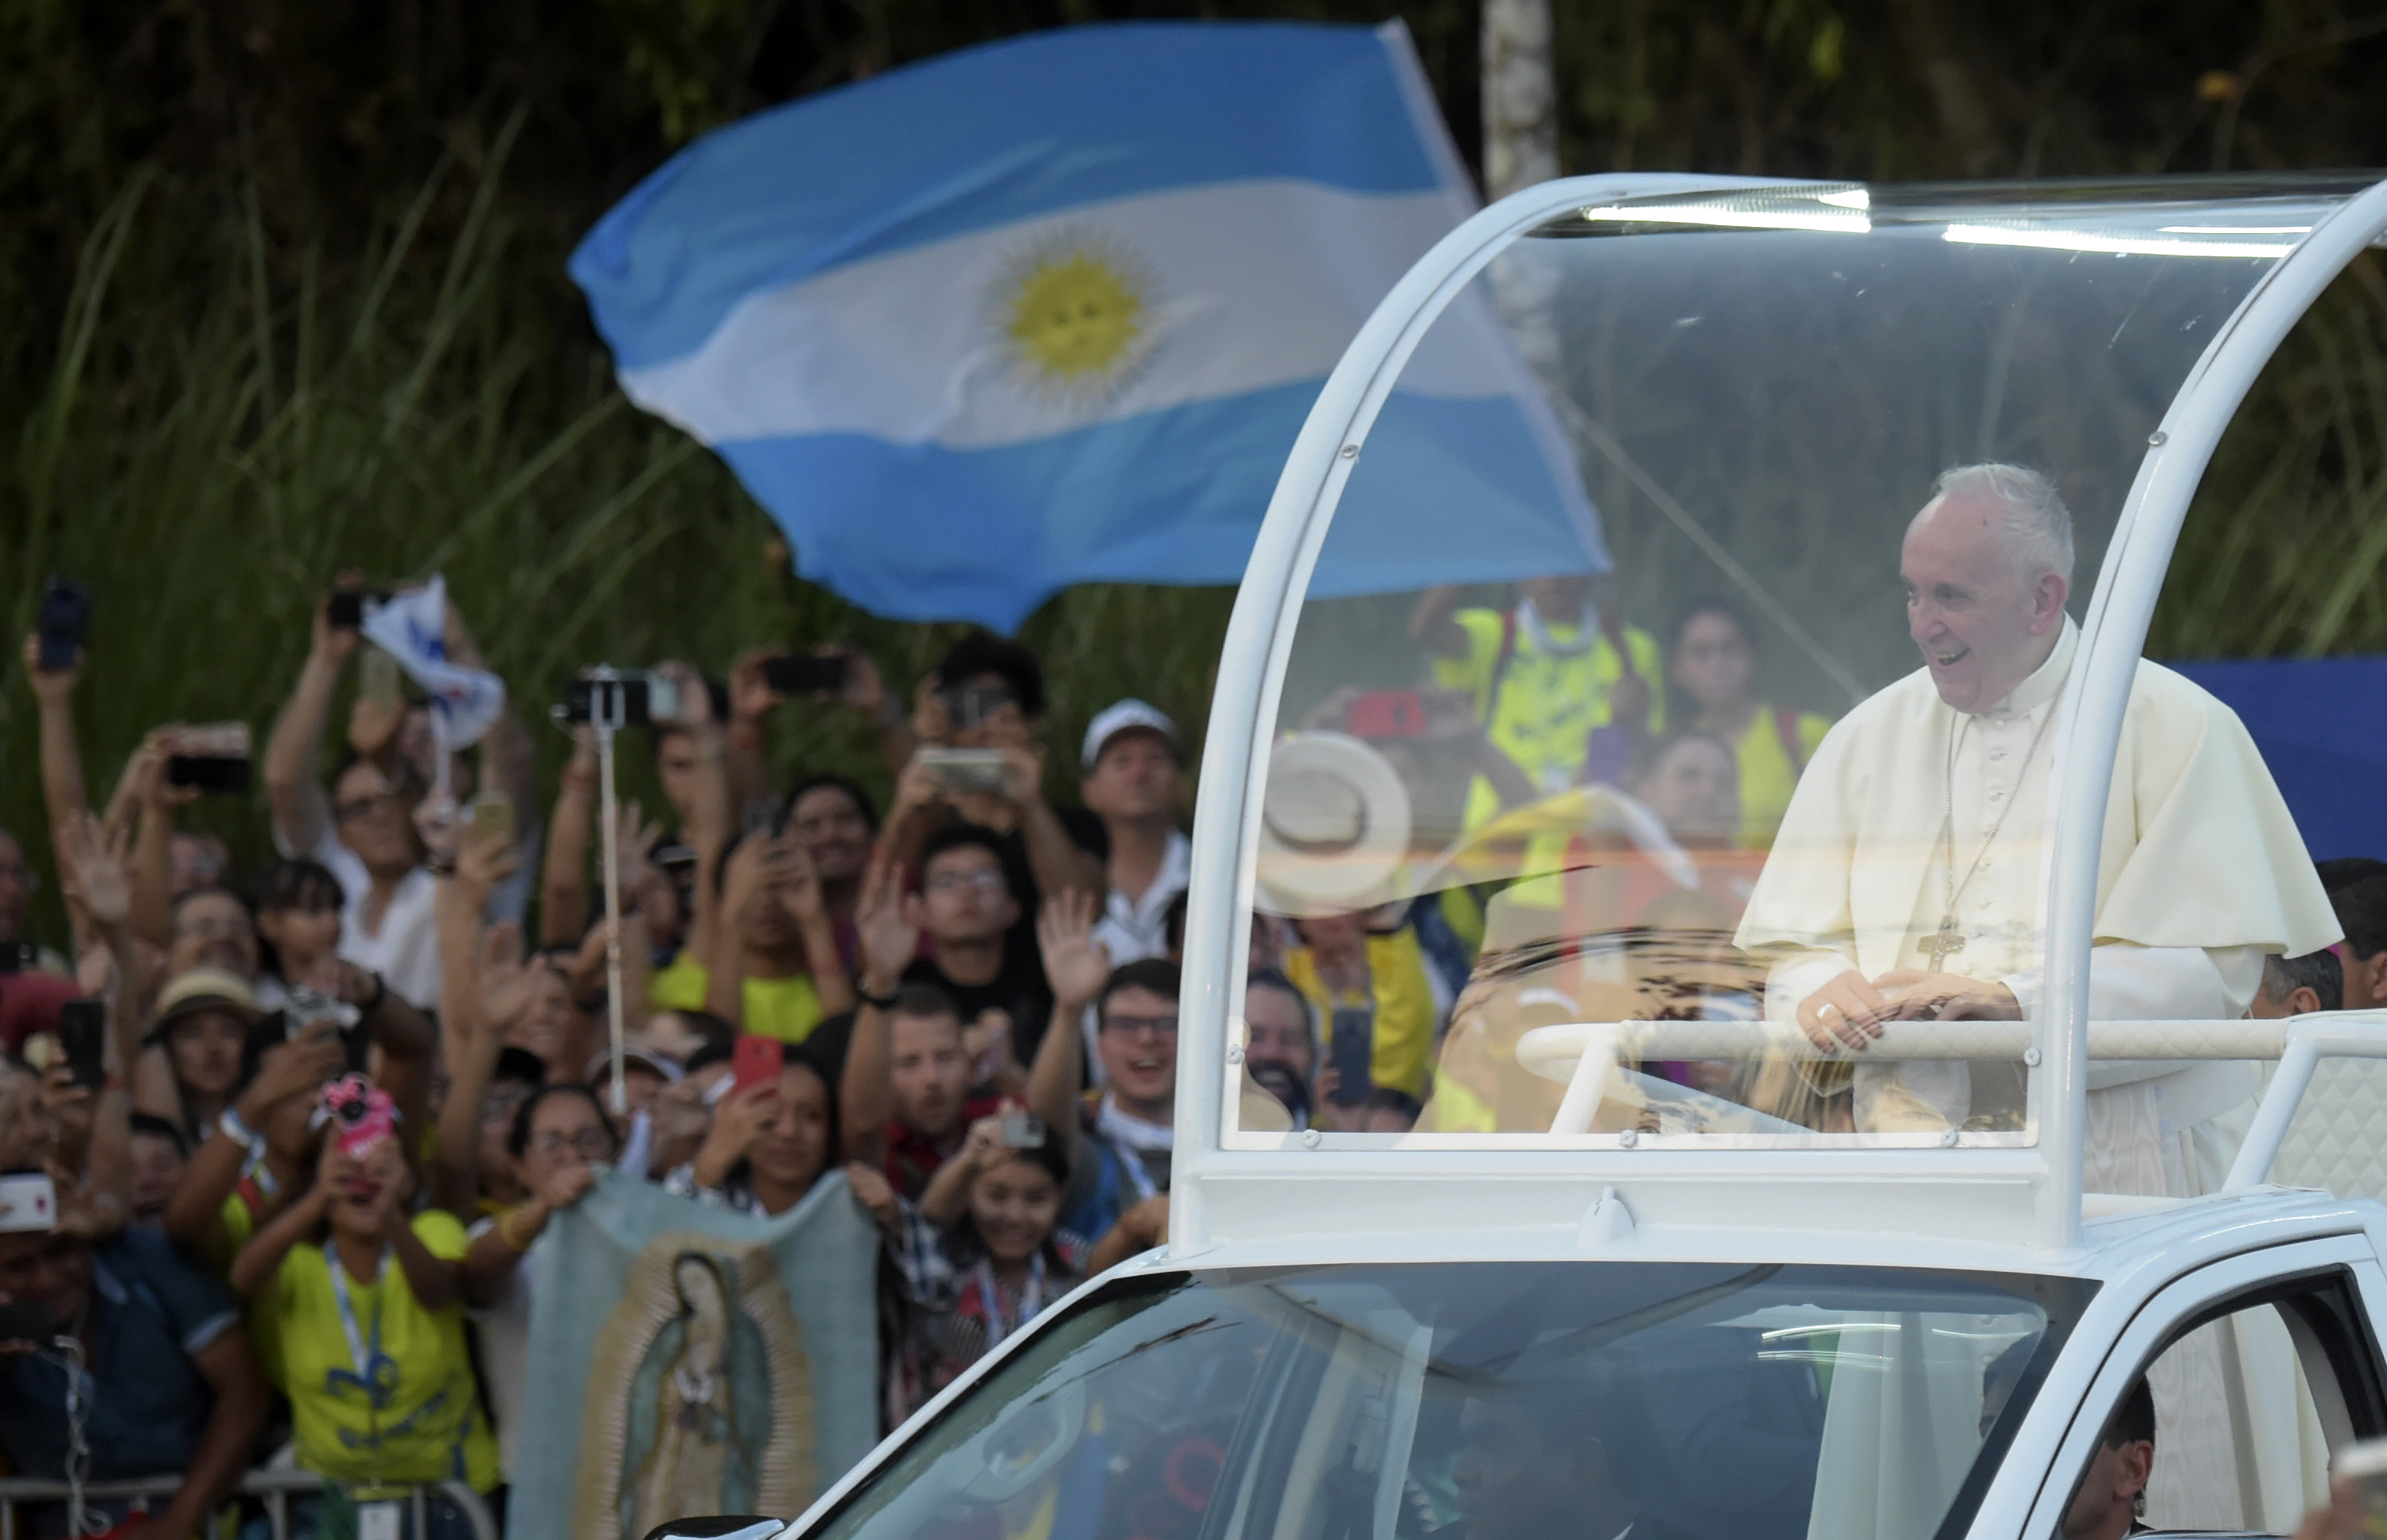 Pope Francis arrives at the nunciature on the popemobile after coming to Panama City for World Youth Day, on January 23, 2019. (RAUL ARBOLEDA/AFP/Getty Images)